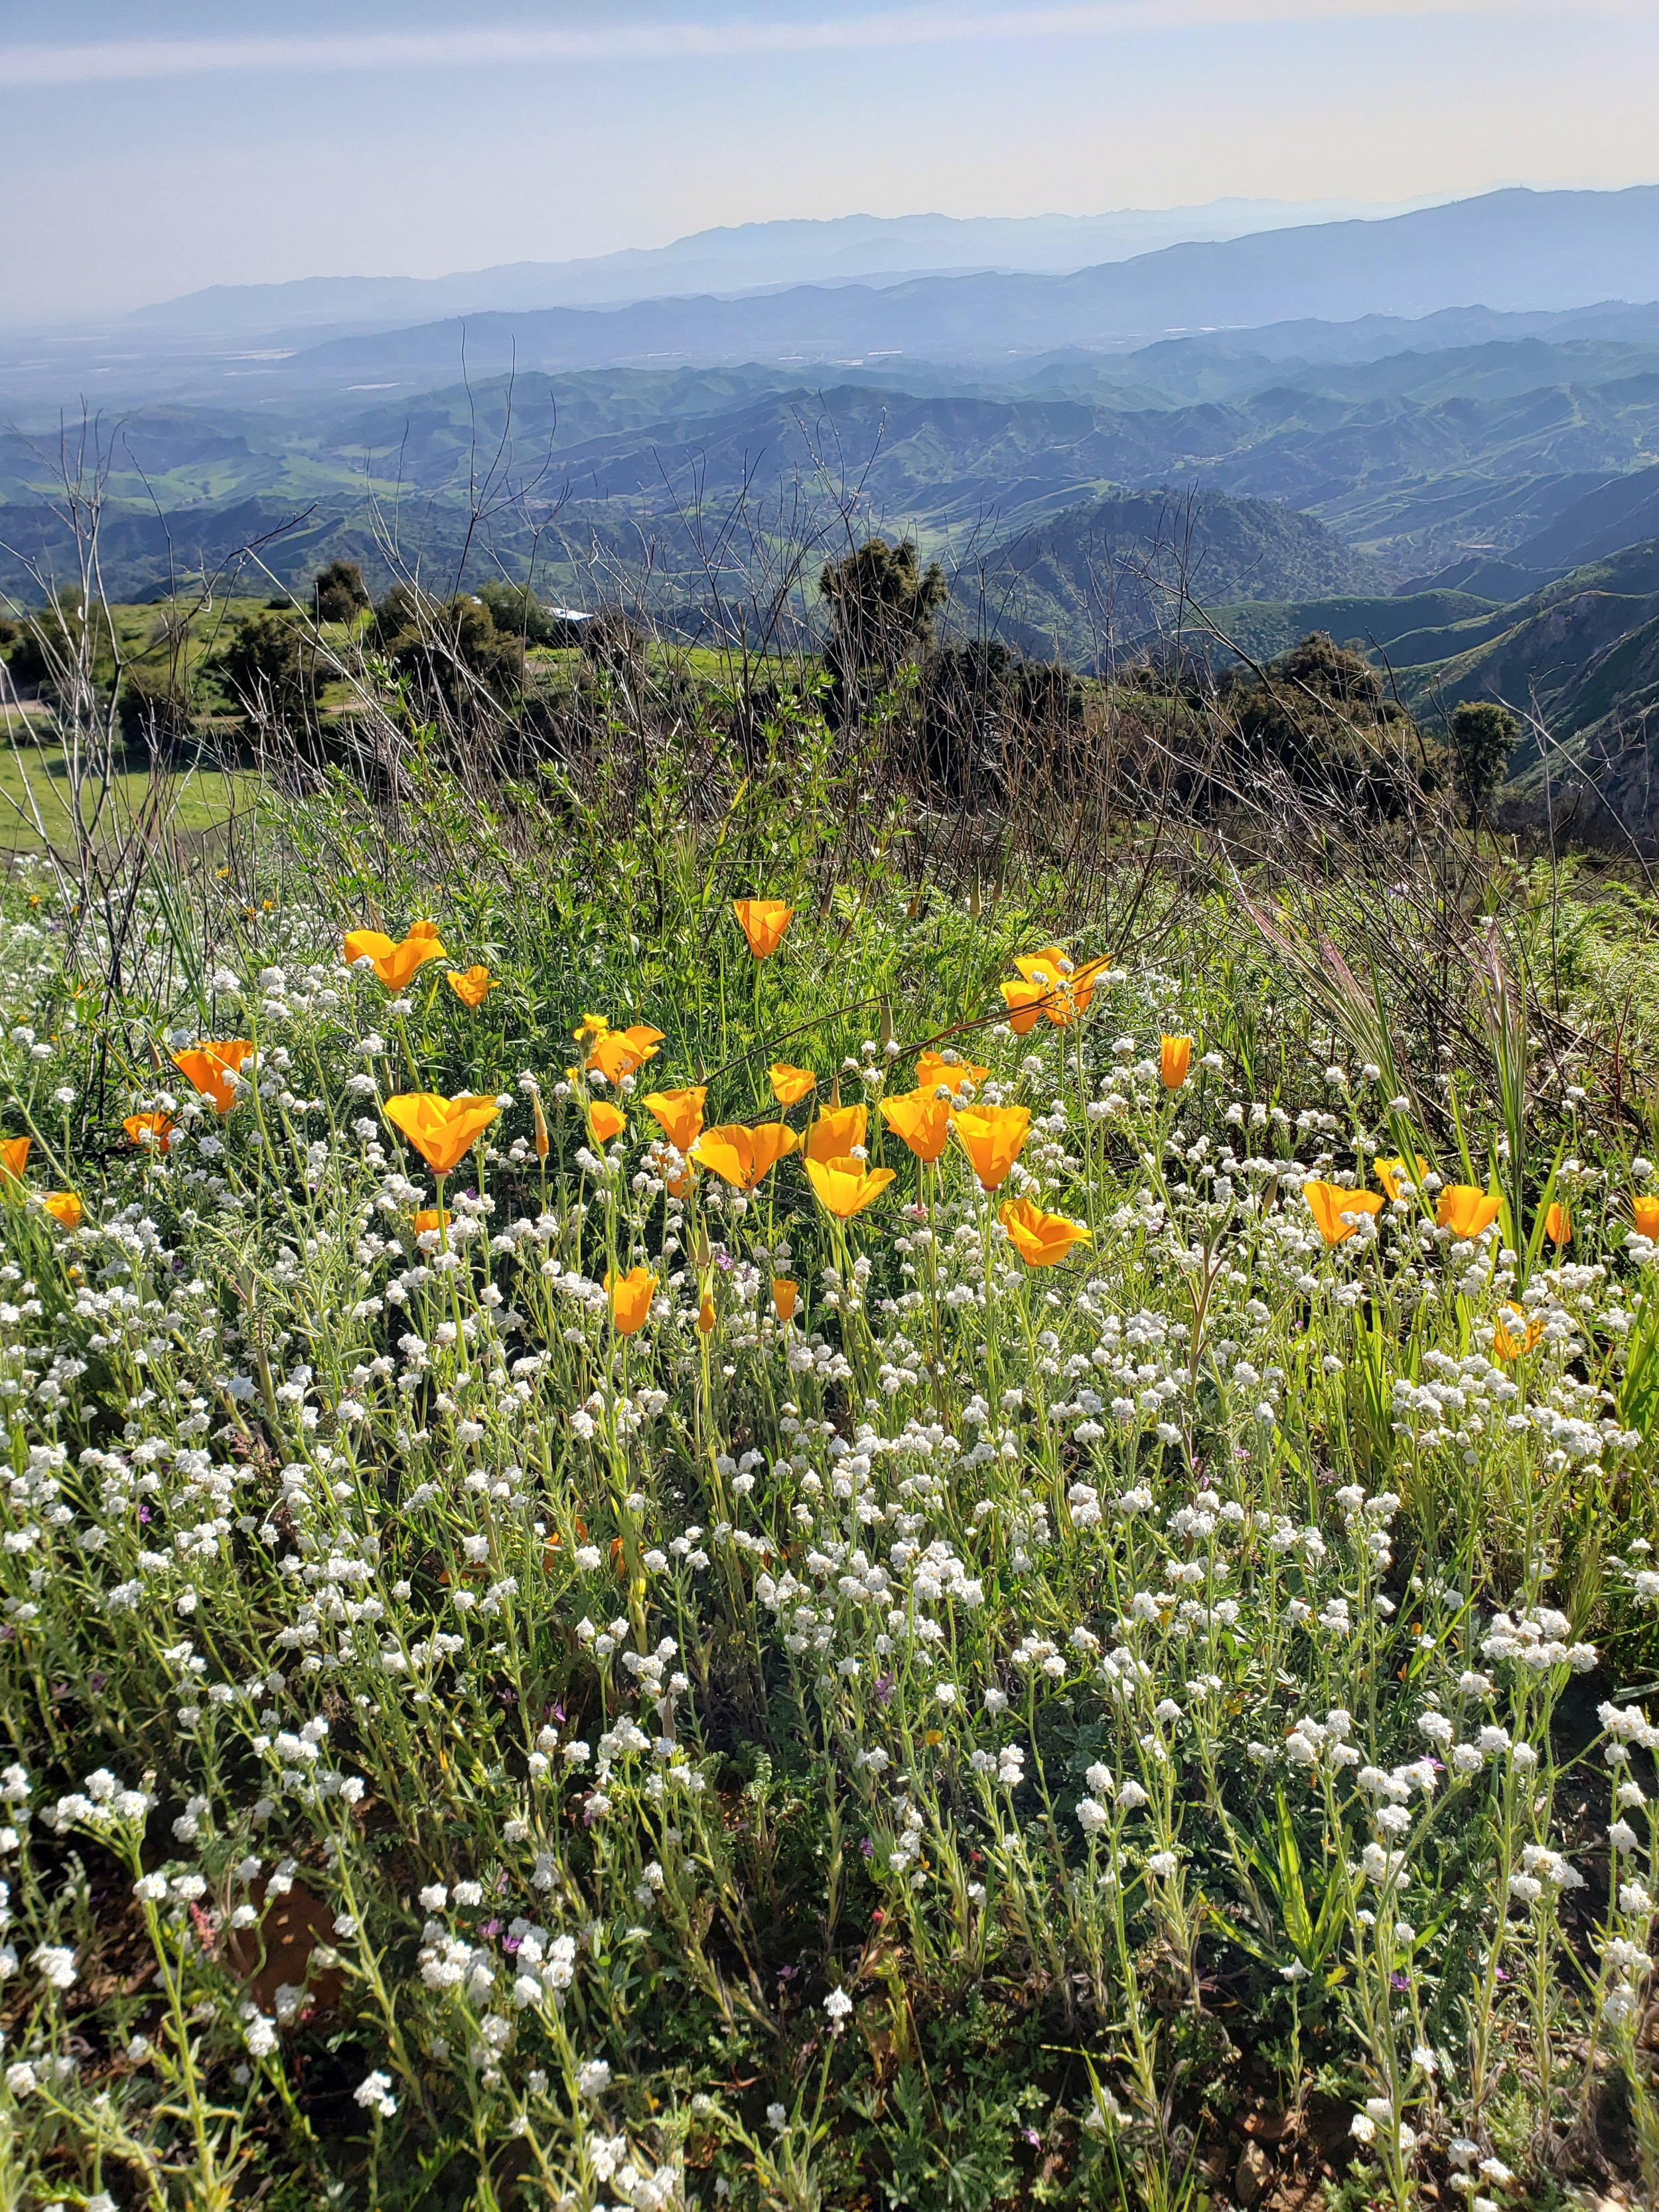 CALIFORNIA POPPIES ( Eschscholzia californica  ssp.  californica)  and a variety of the Popcornflower at Meher Mount looking south toward the Santa Monica Mountains and the Heritage Valley. (Photo: Stephanie Ervin, March 24, 2019)